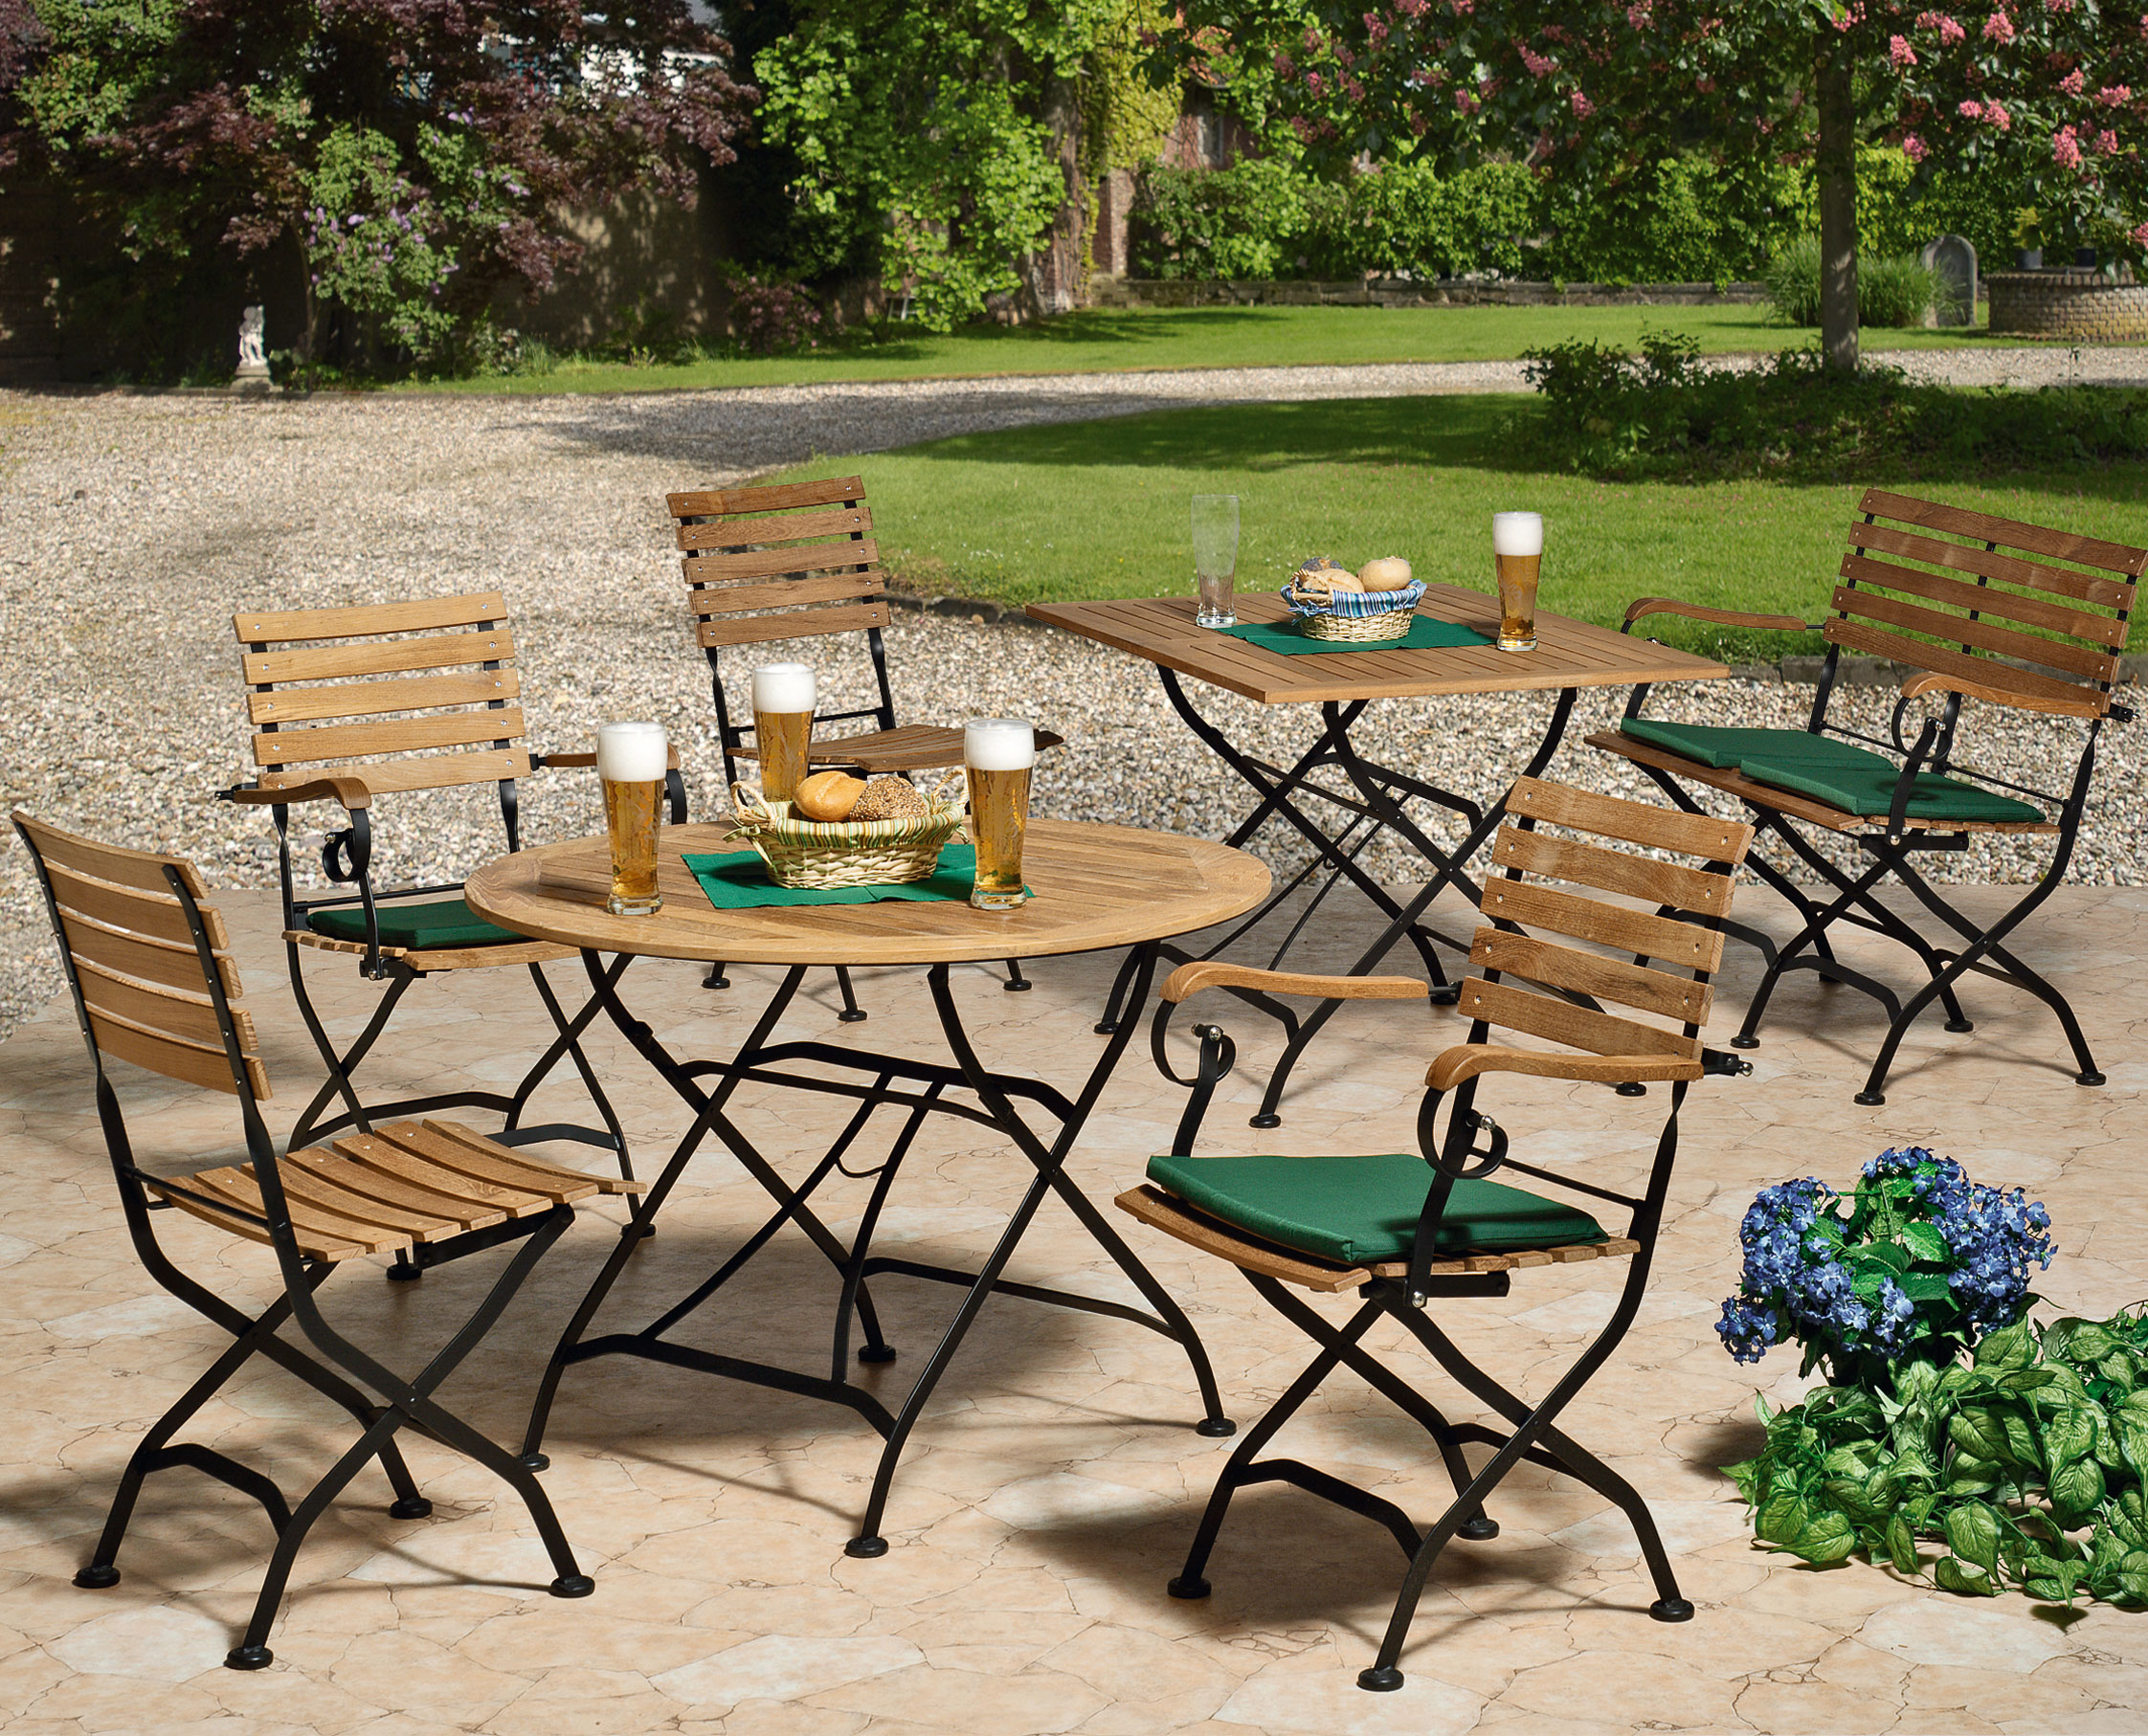 gartenbank biergartenm bel klappbar peru ii 2 sitzer teakholz stahl bei. Black Bedroom Furniture Sets. Home Design Ideas